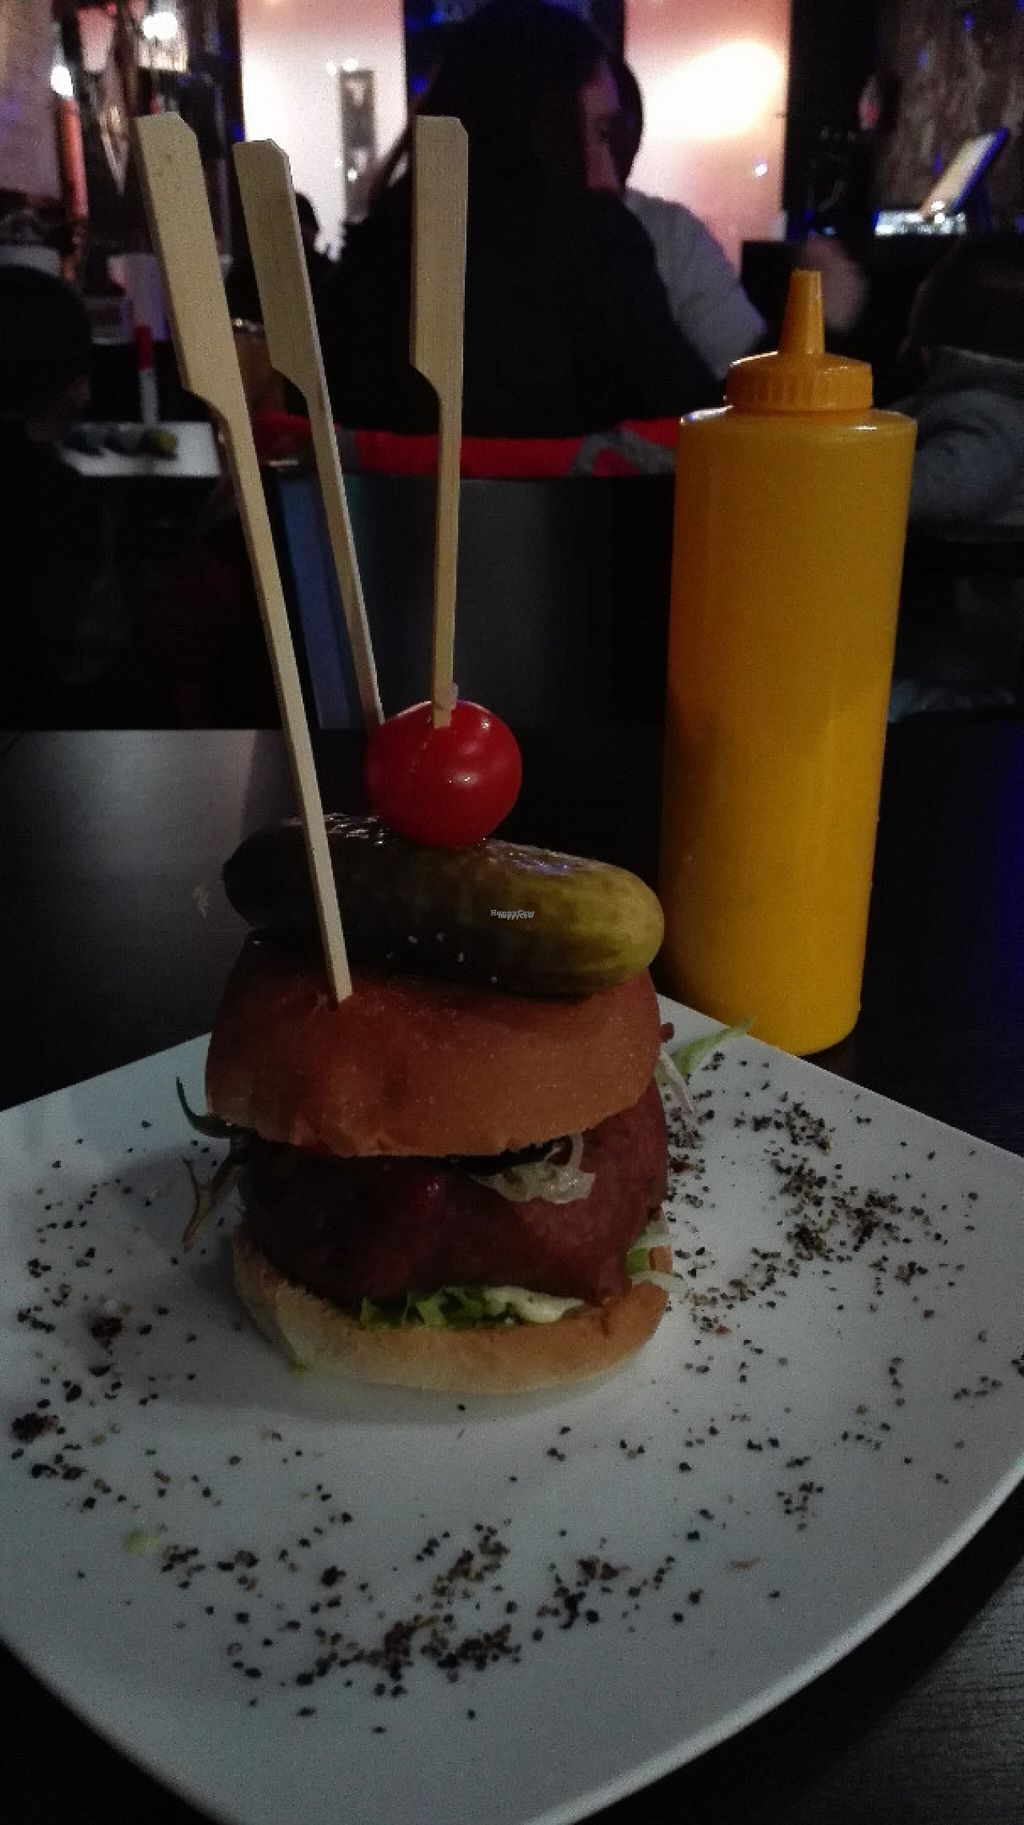 """Photo of Lily Burger  by <a href=""""/members/profile/VeganVenturer"""">VeganVenturer</a> <br/>Oldtimer burger. The yellow can has vegan mayo and you can use it if you wish <br/> November 6, 2016  - <a href='/contact/abuse/image/45852/186876'>Report</a>"""